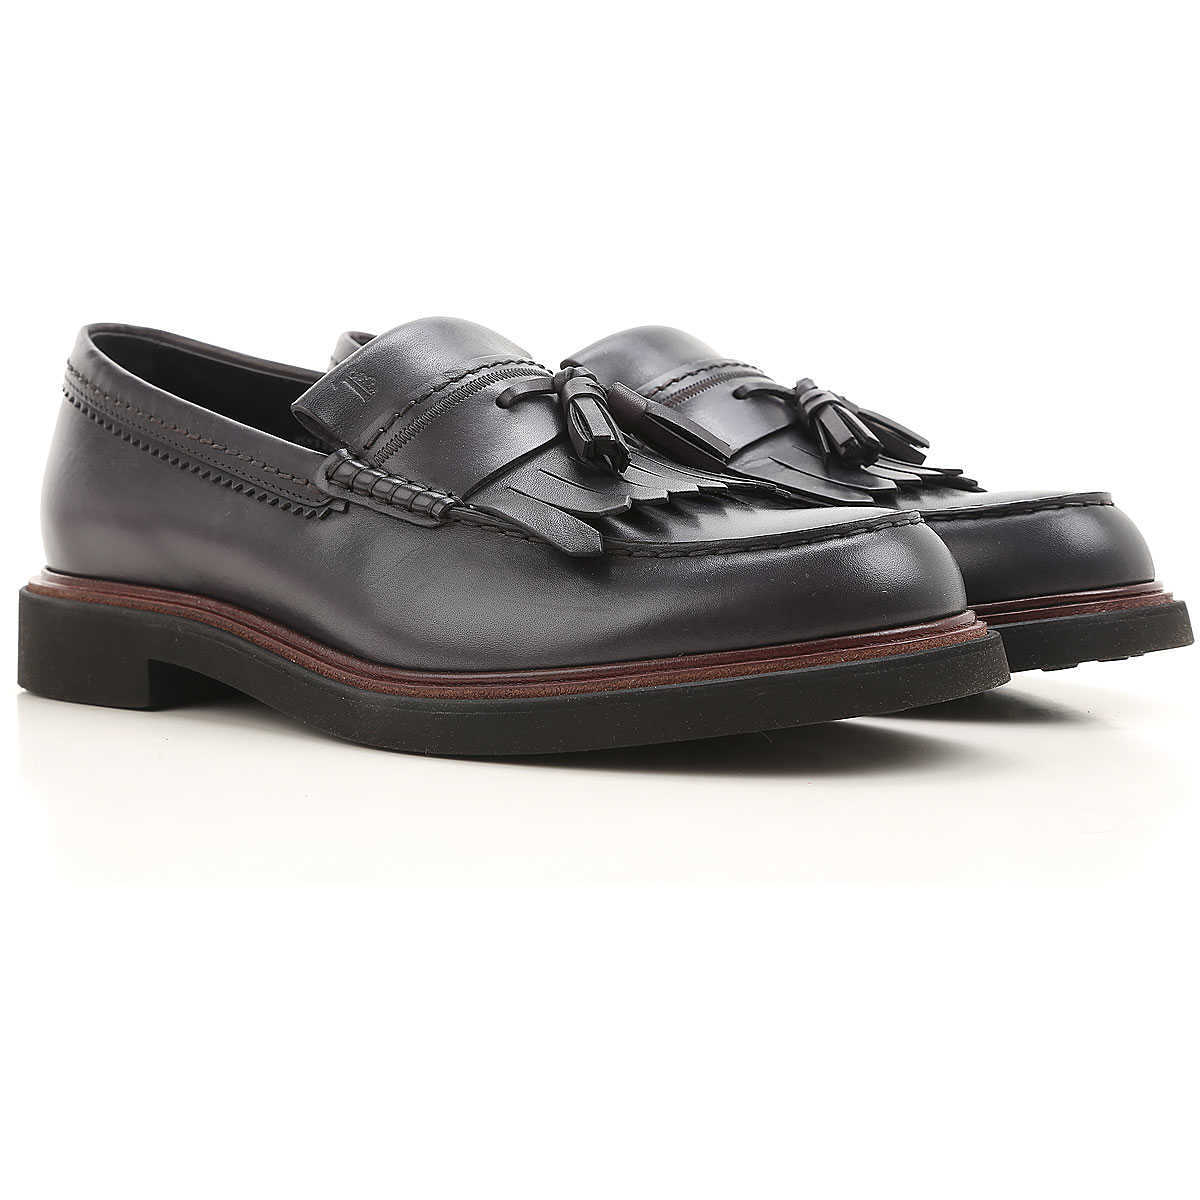 Tods Loafers for Men in Outlet smoked Grey Canada - GOOFASH - Mens LOAFERS